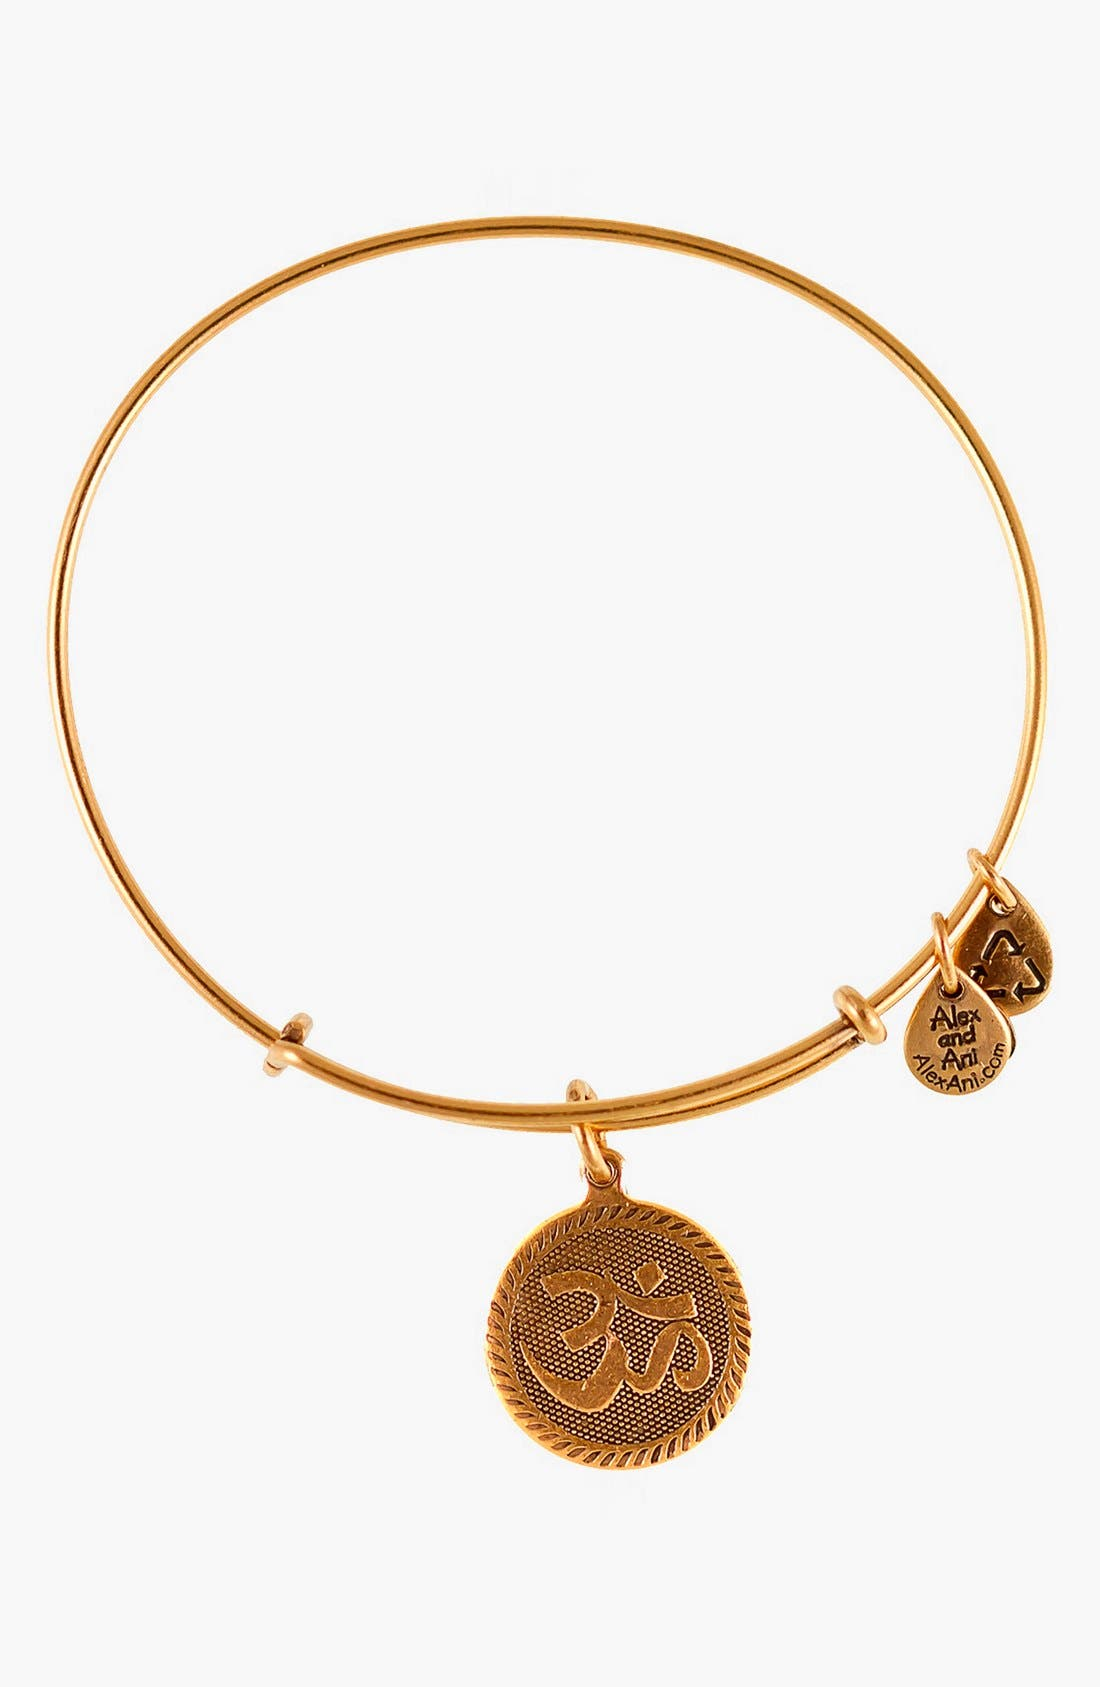 Main Image - Alex and Ani 'Om' Wire Bangle